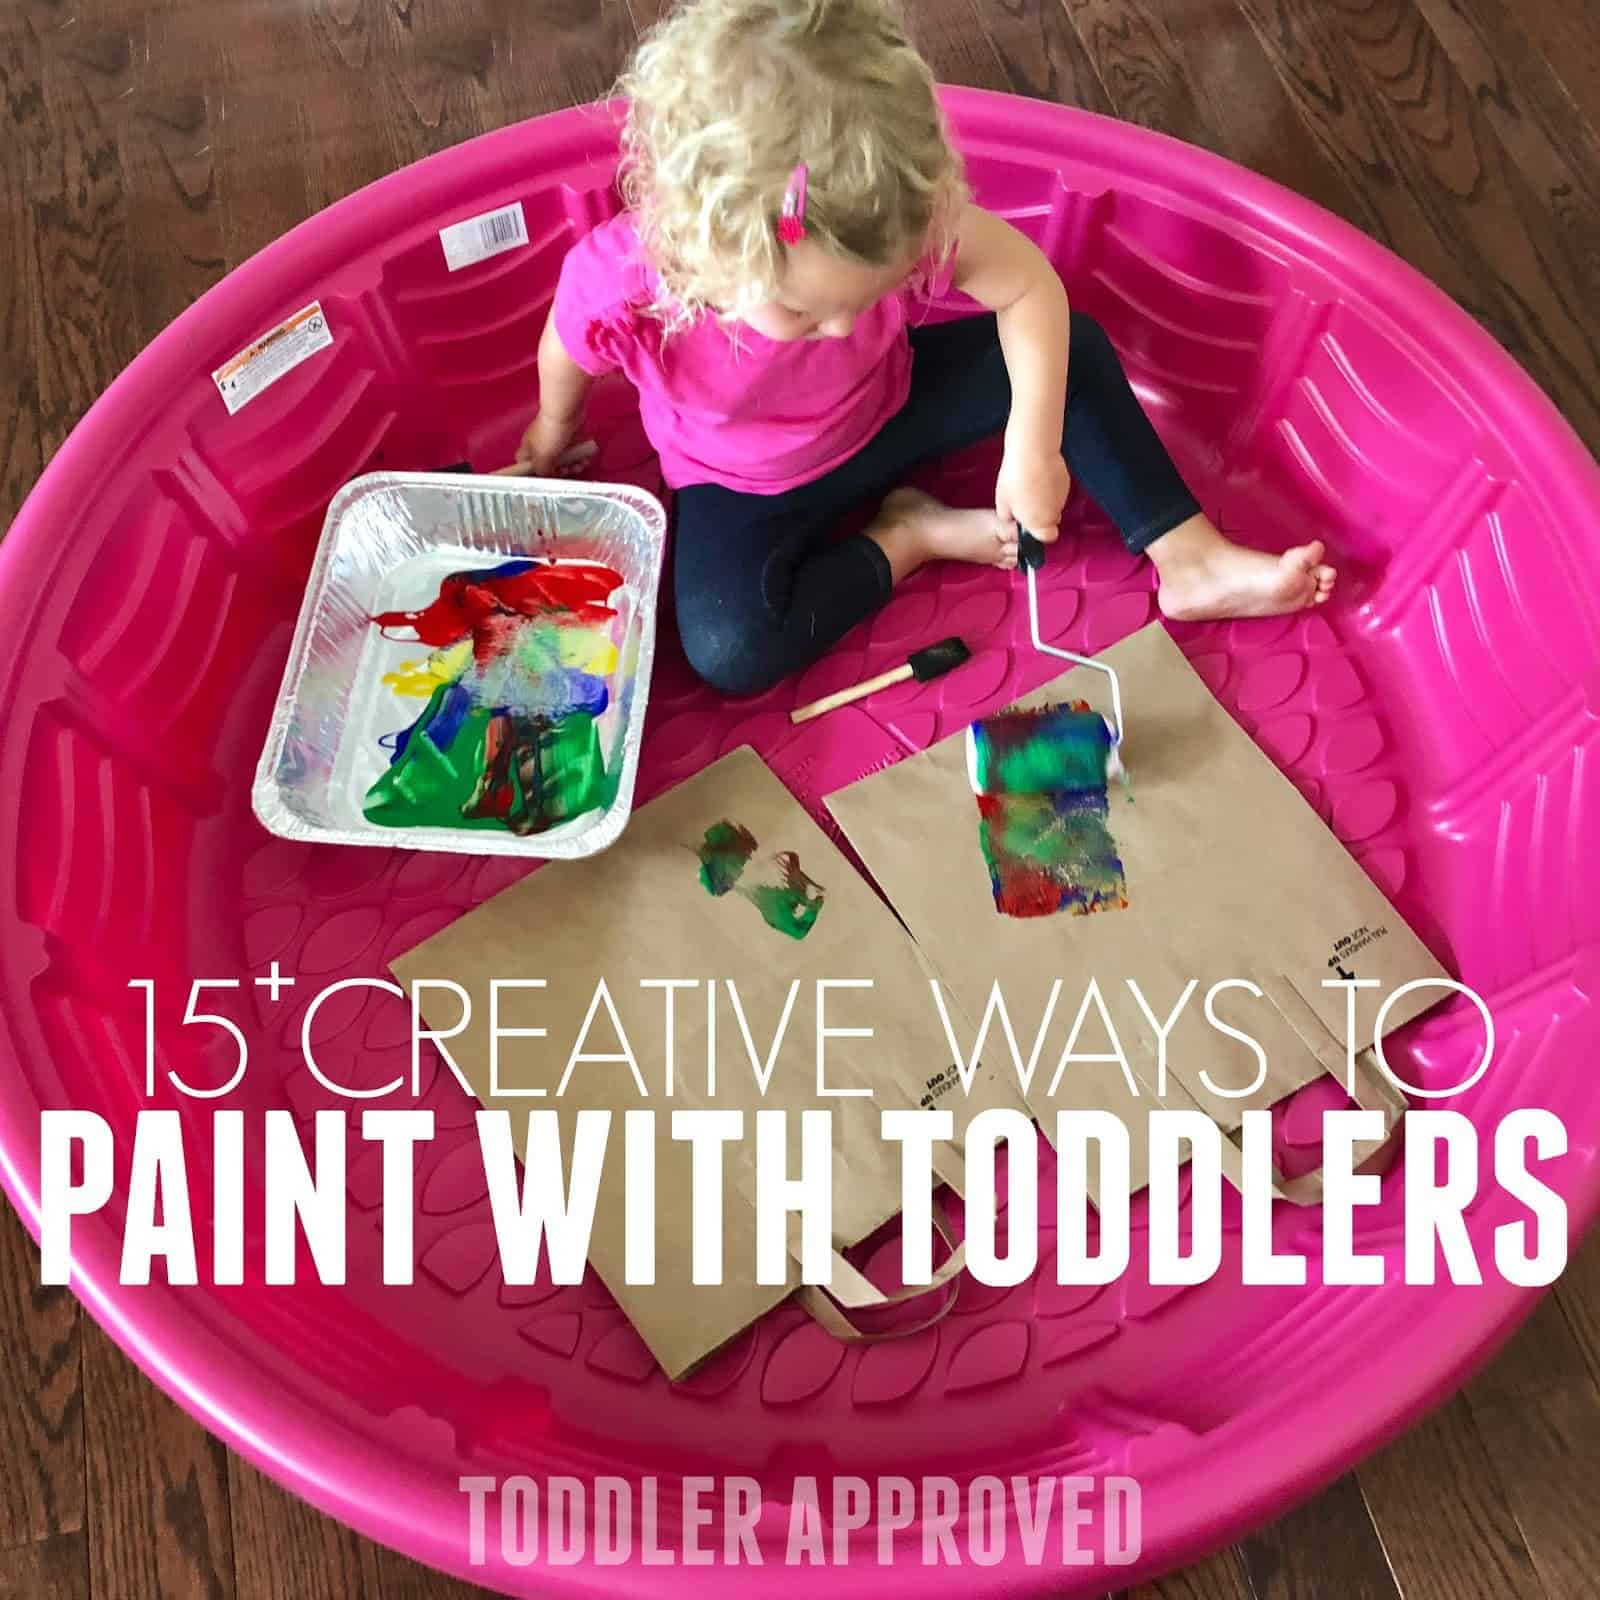 15 Creative Ways To Paint With Toddlers Toddler Approved